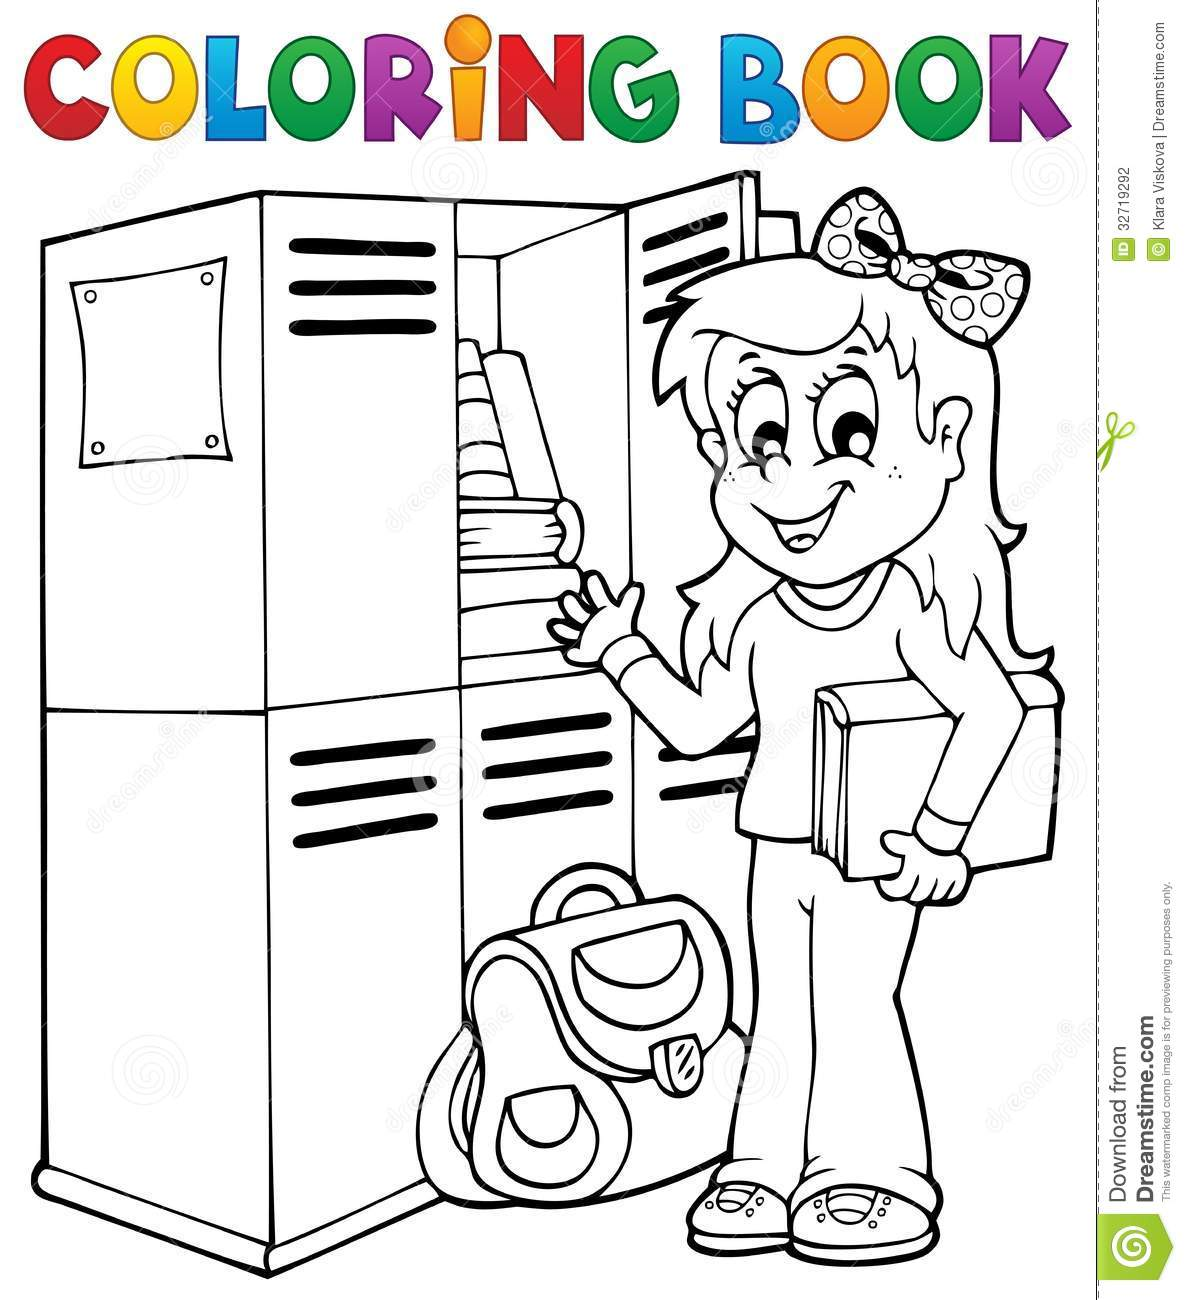 Coloring book school - Book Coloring Eps10 Illustration School